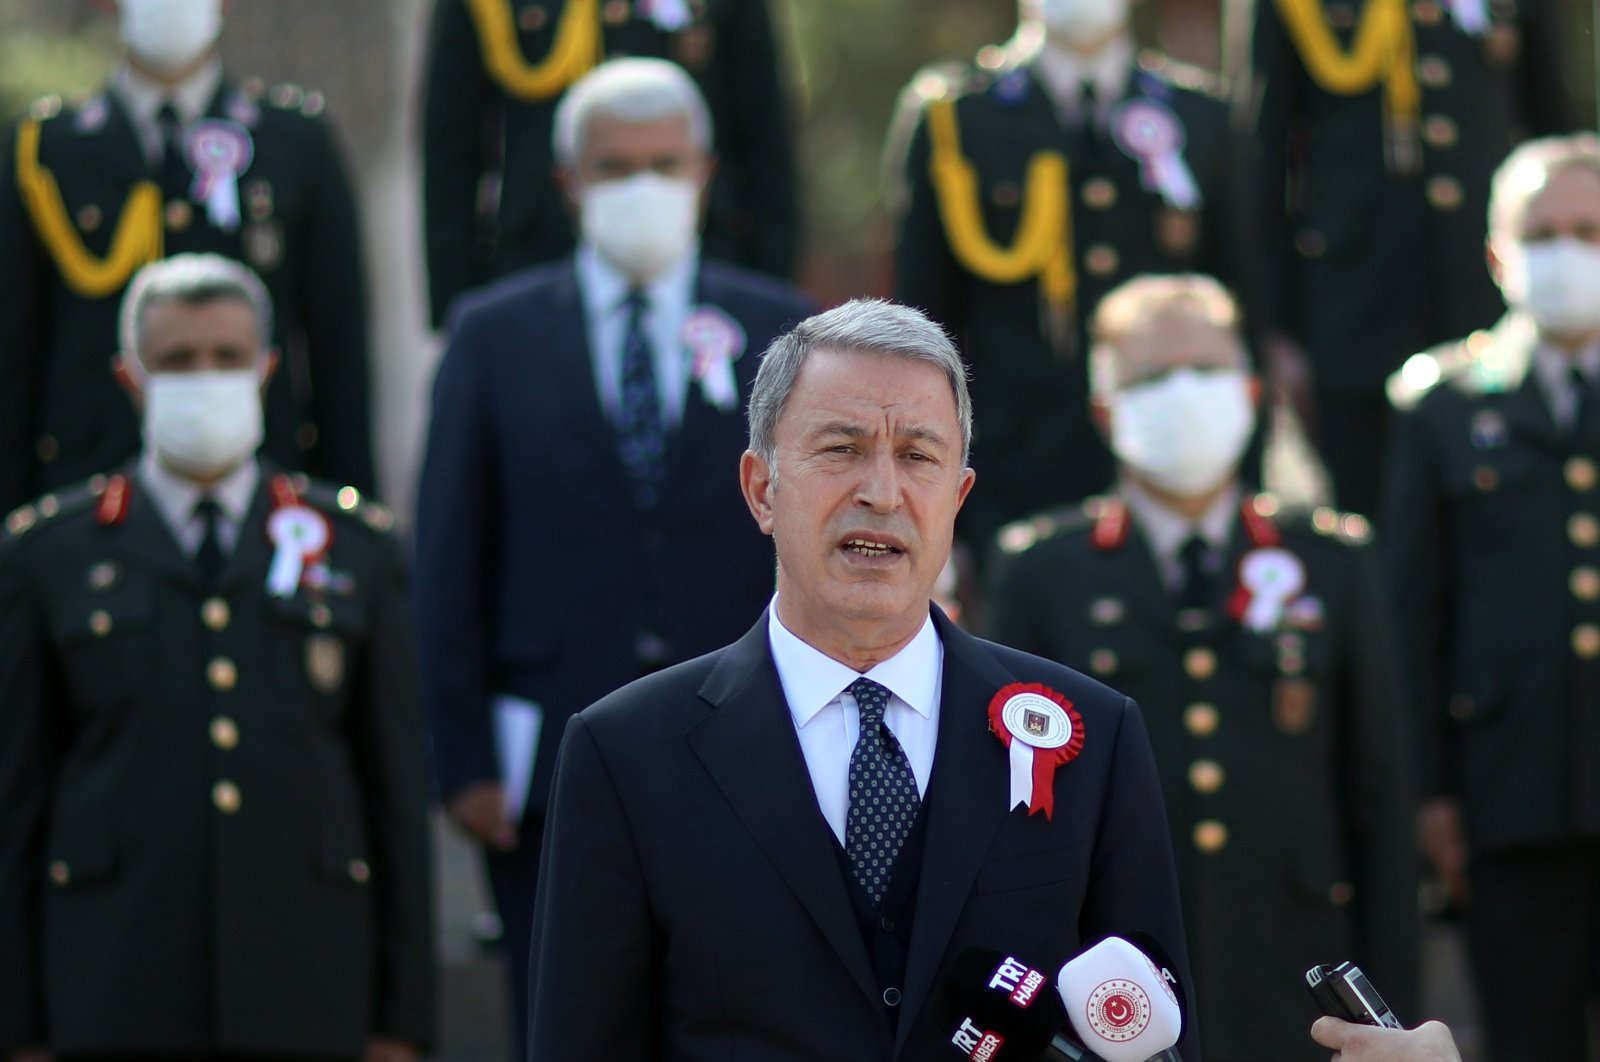 Defense Minister Hulusi Akar attends the inauguration ceremony of the National Defense University in Istanbul, Sept. 14, 2020. (AA File Photo)